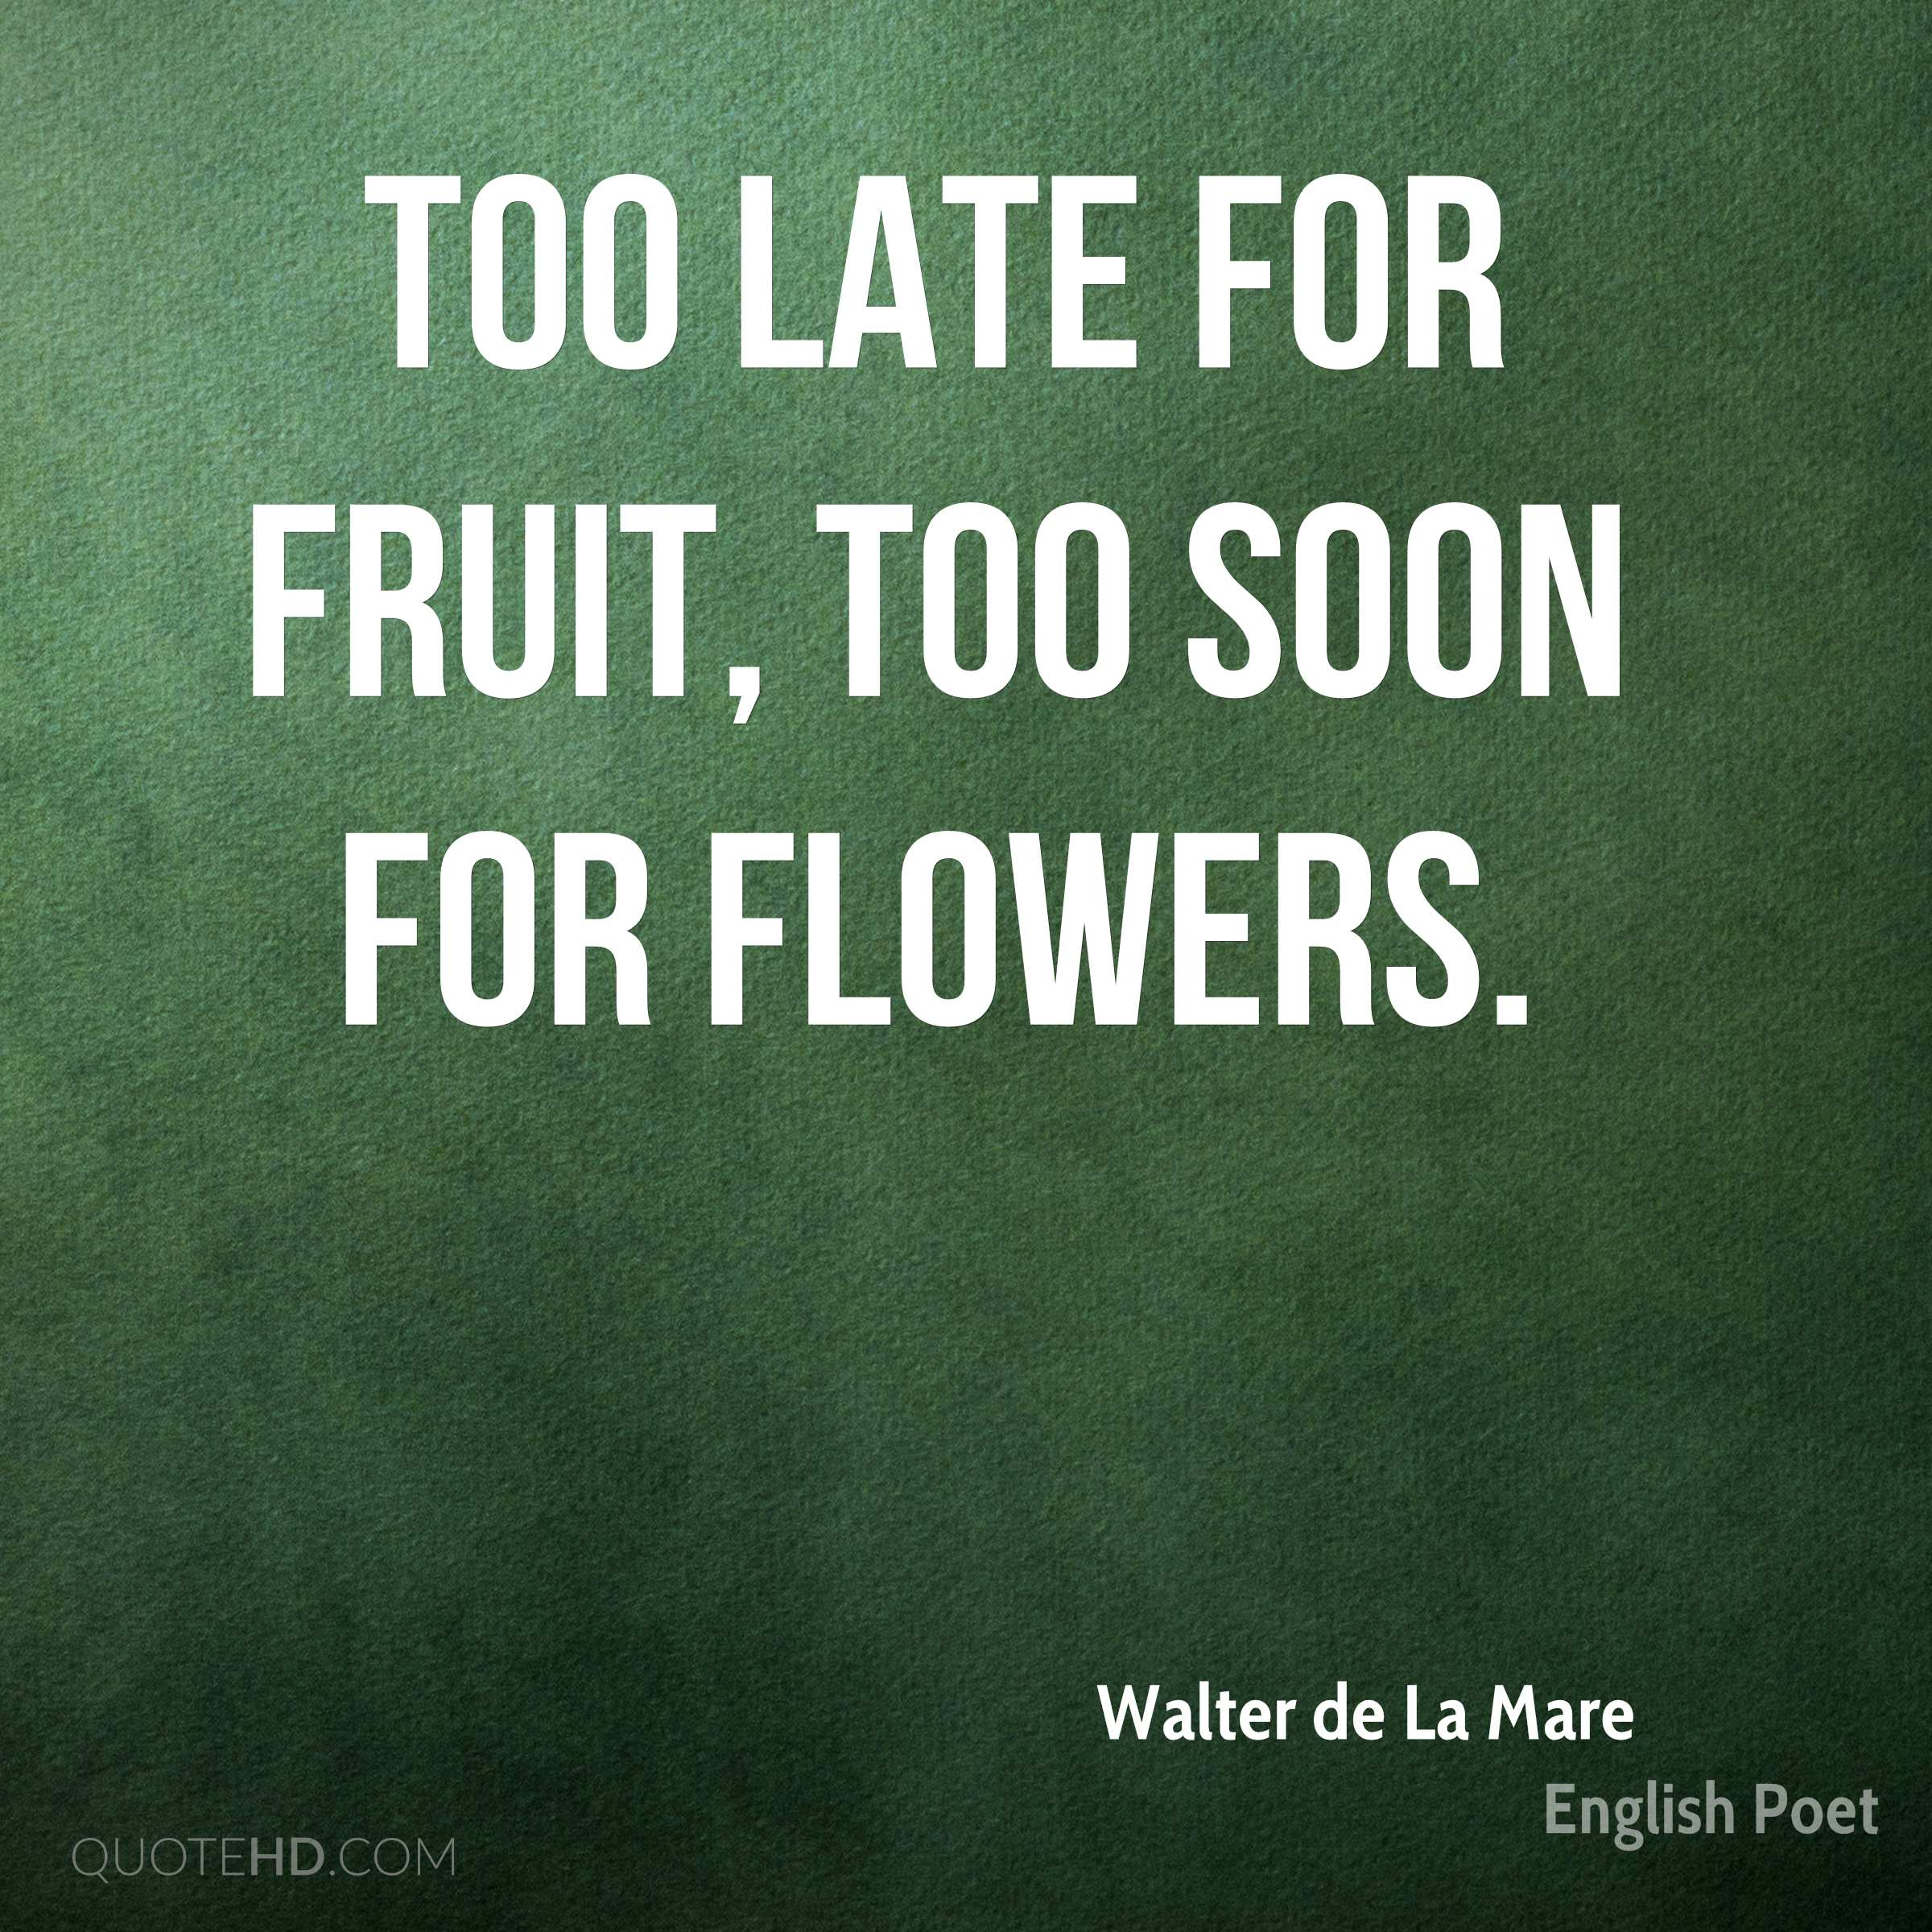 Too late for fruit, too soon for flowers.